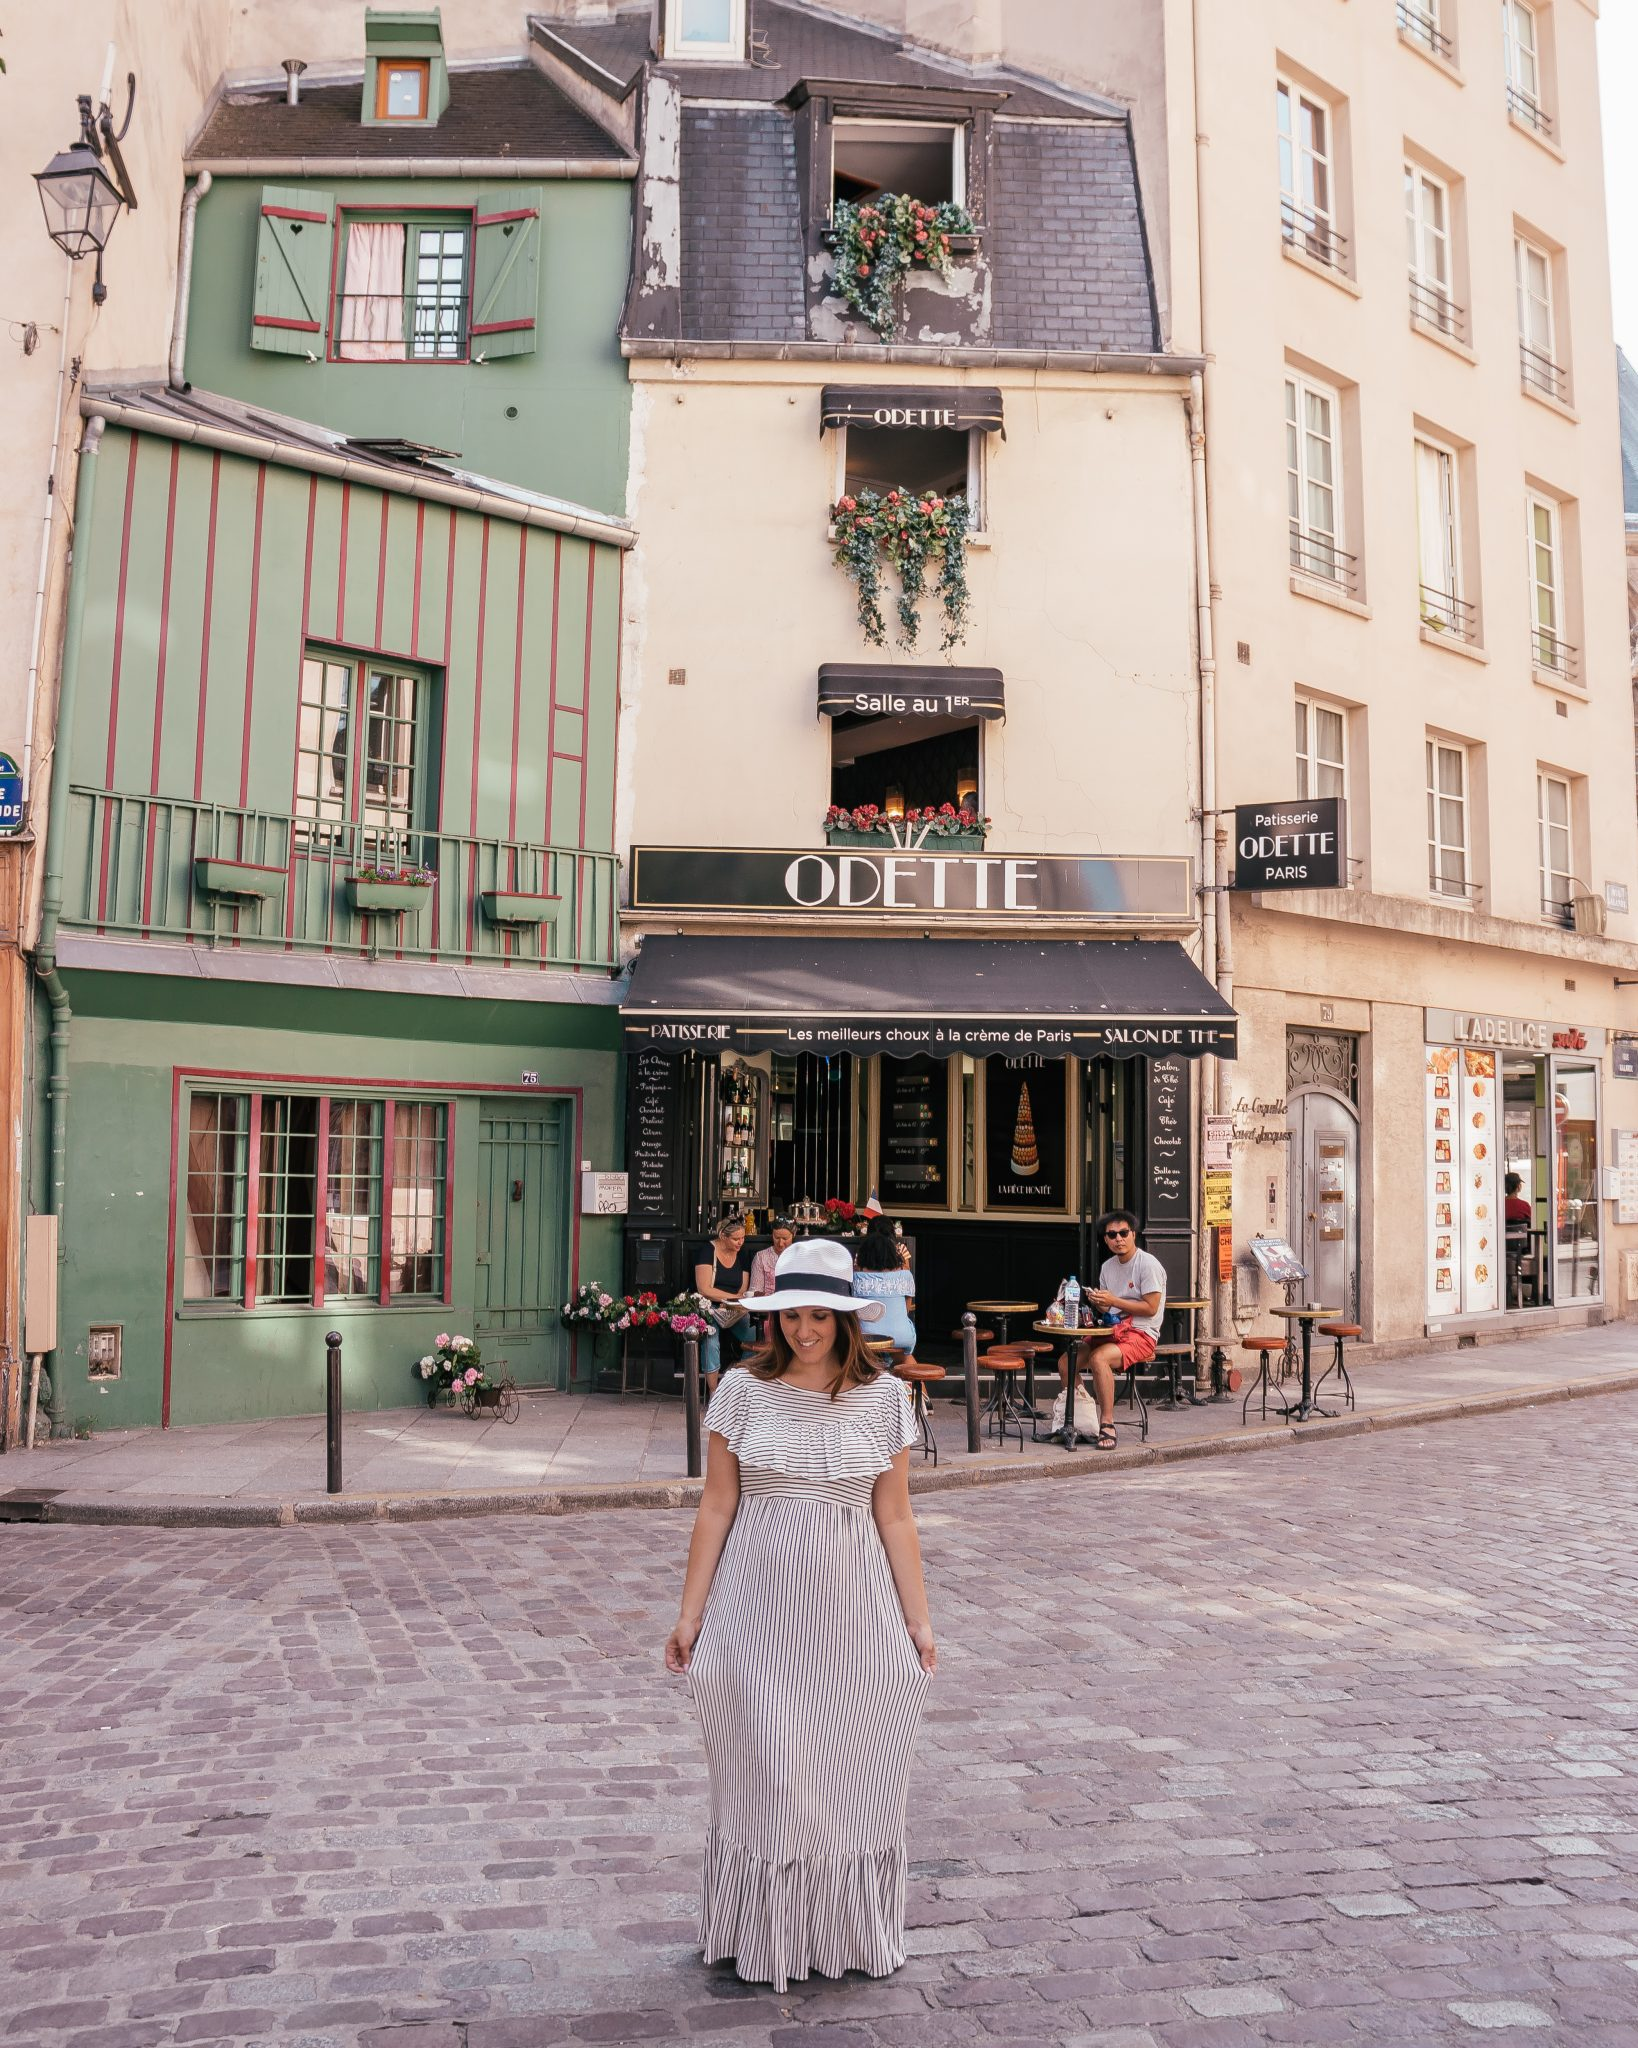 12 Best Photo Spots in Paris For Epic Instagram Shots - Quartier Latin